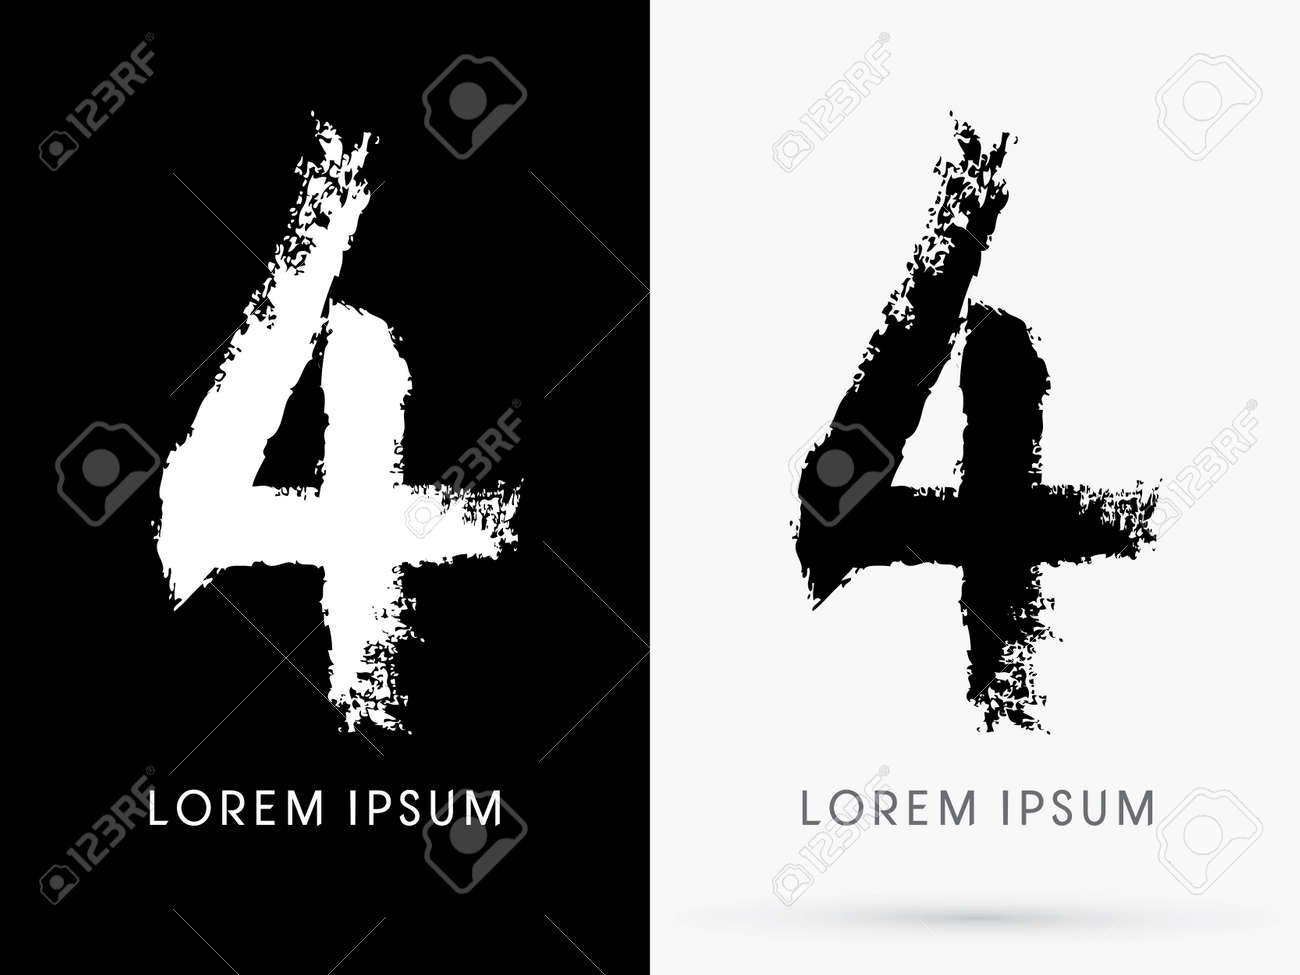 4 Number Grunge Brush Freestyle Font Designed Using Black And White Handwriting Line Shape Logo Symbol